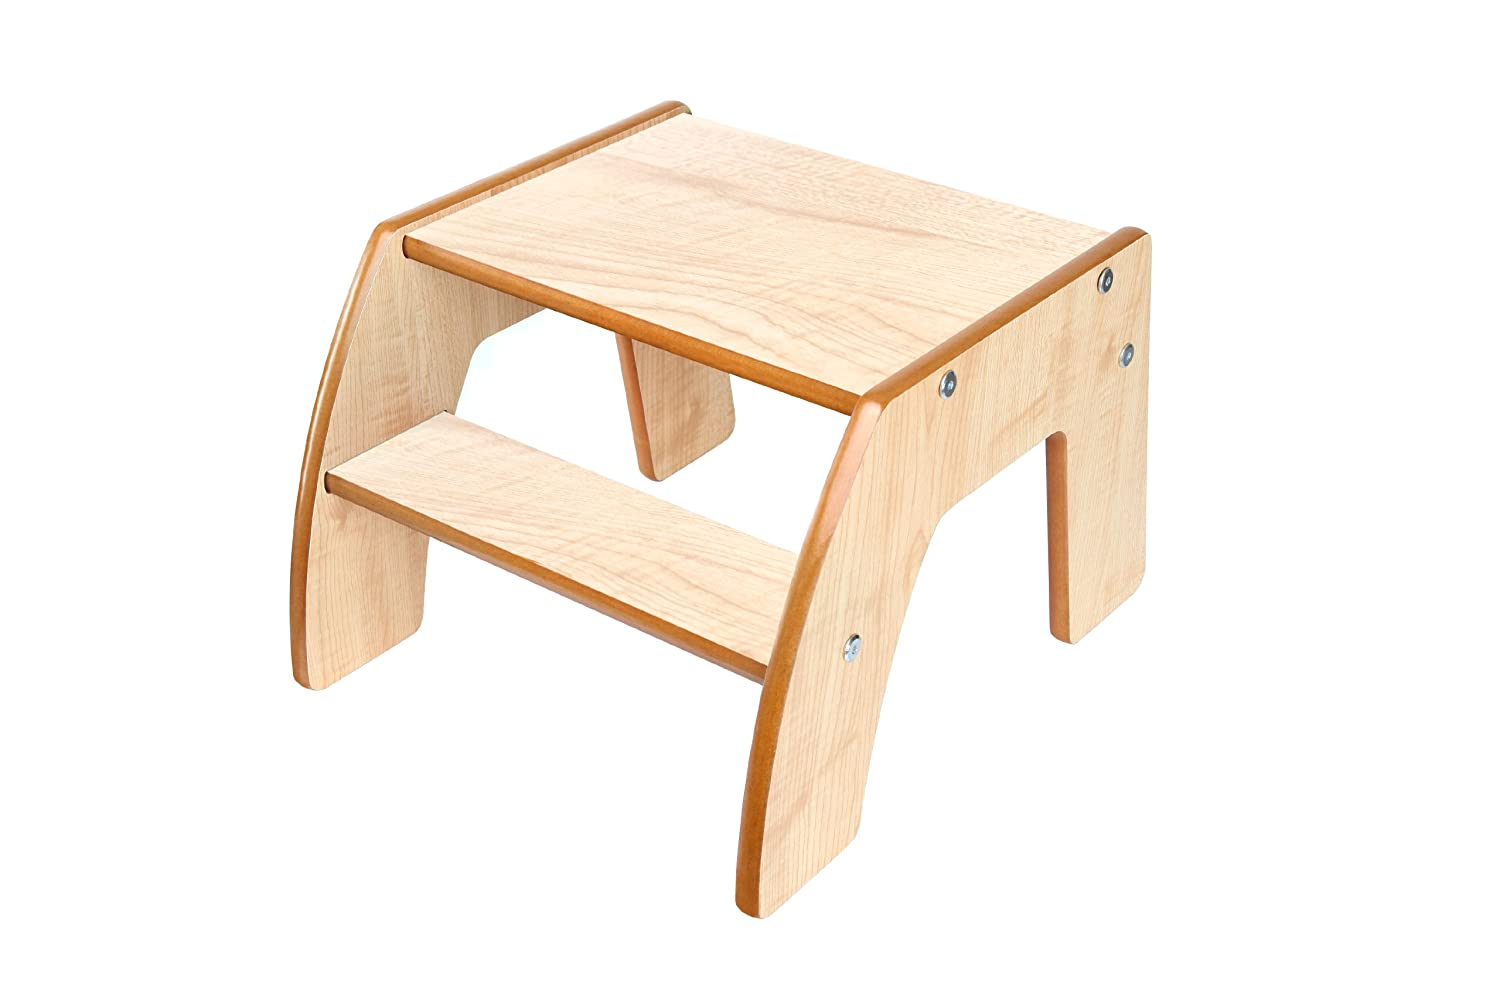 Little Helper FunStep Toddler u0026 Child Safety Step Stool (Maple) Amazon.co.uk Toys u0026 Games  sc 1 st  Amazon UK & Little Helper FunStep Toddler u0026 Child Safety Step Stool (Maple ... islam-shia.org